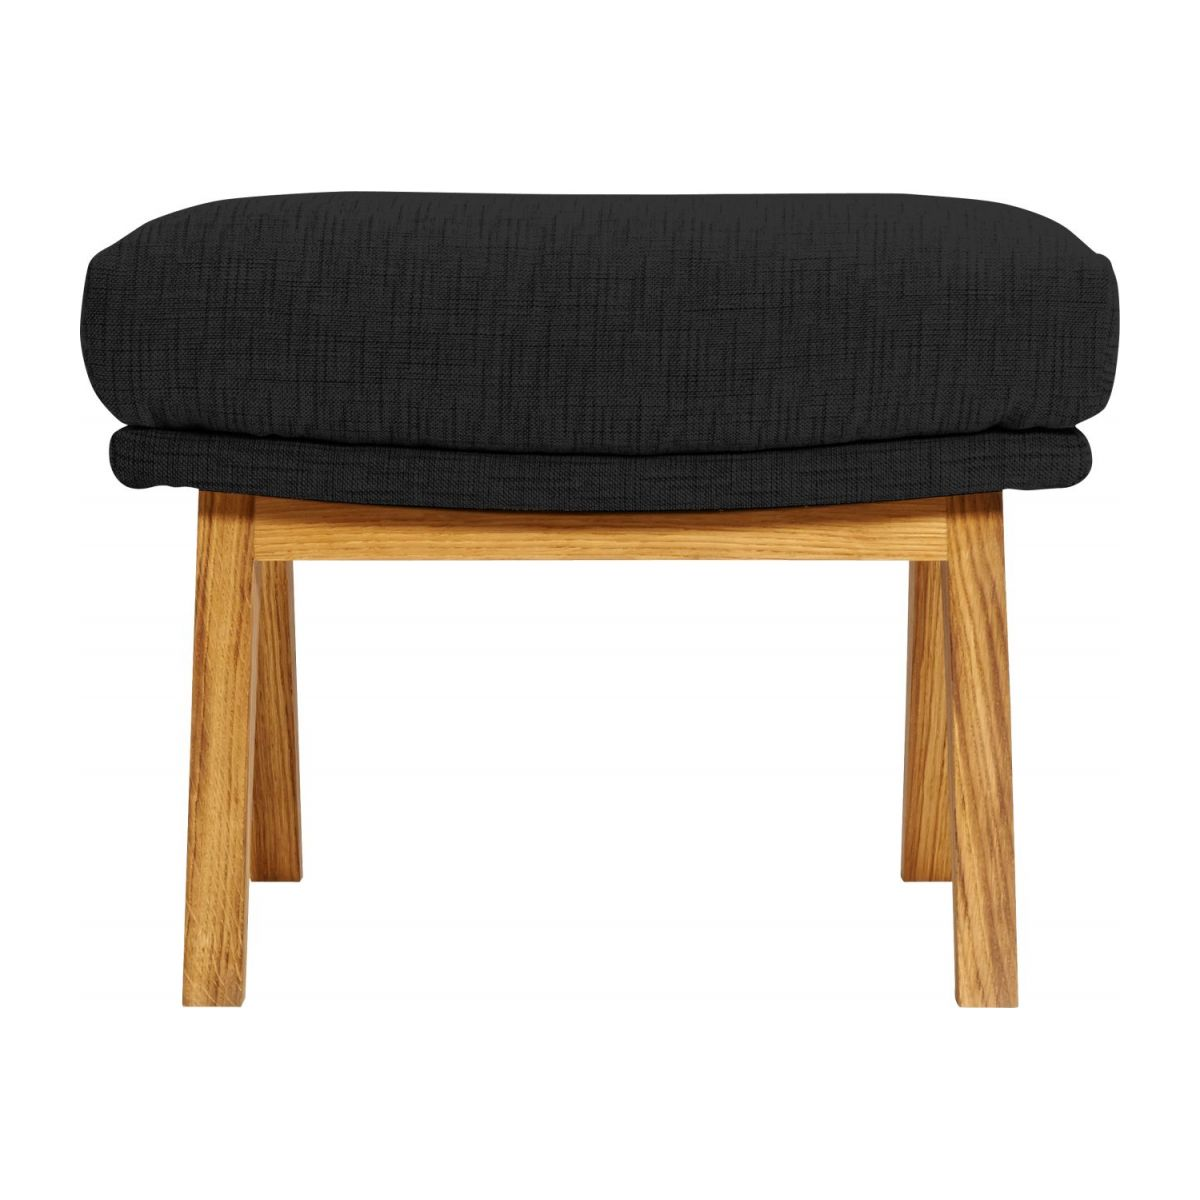 Footstool in Ancio fabric, nero with oak legs n°3